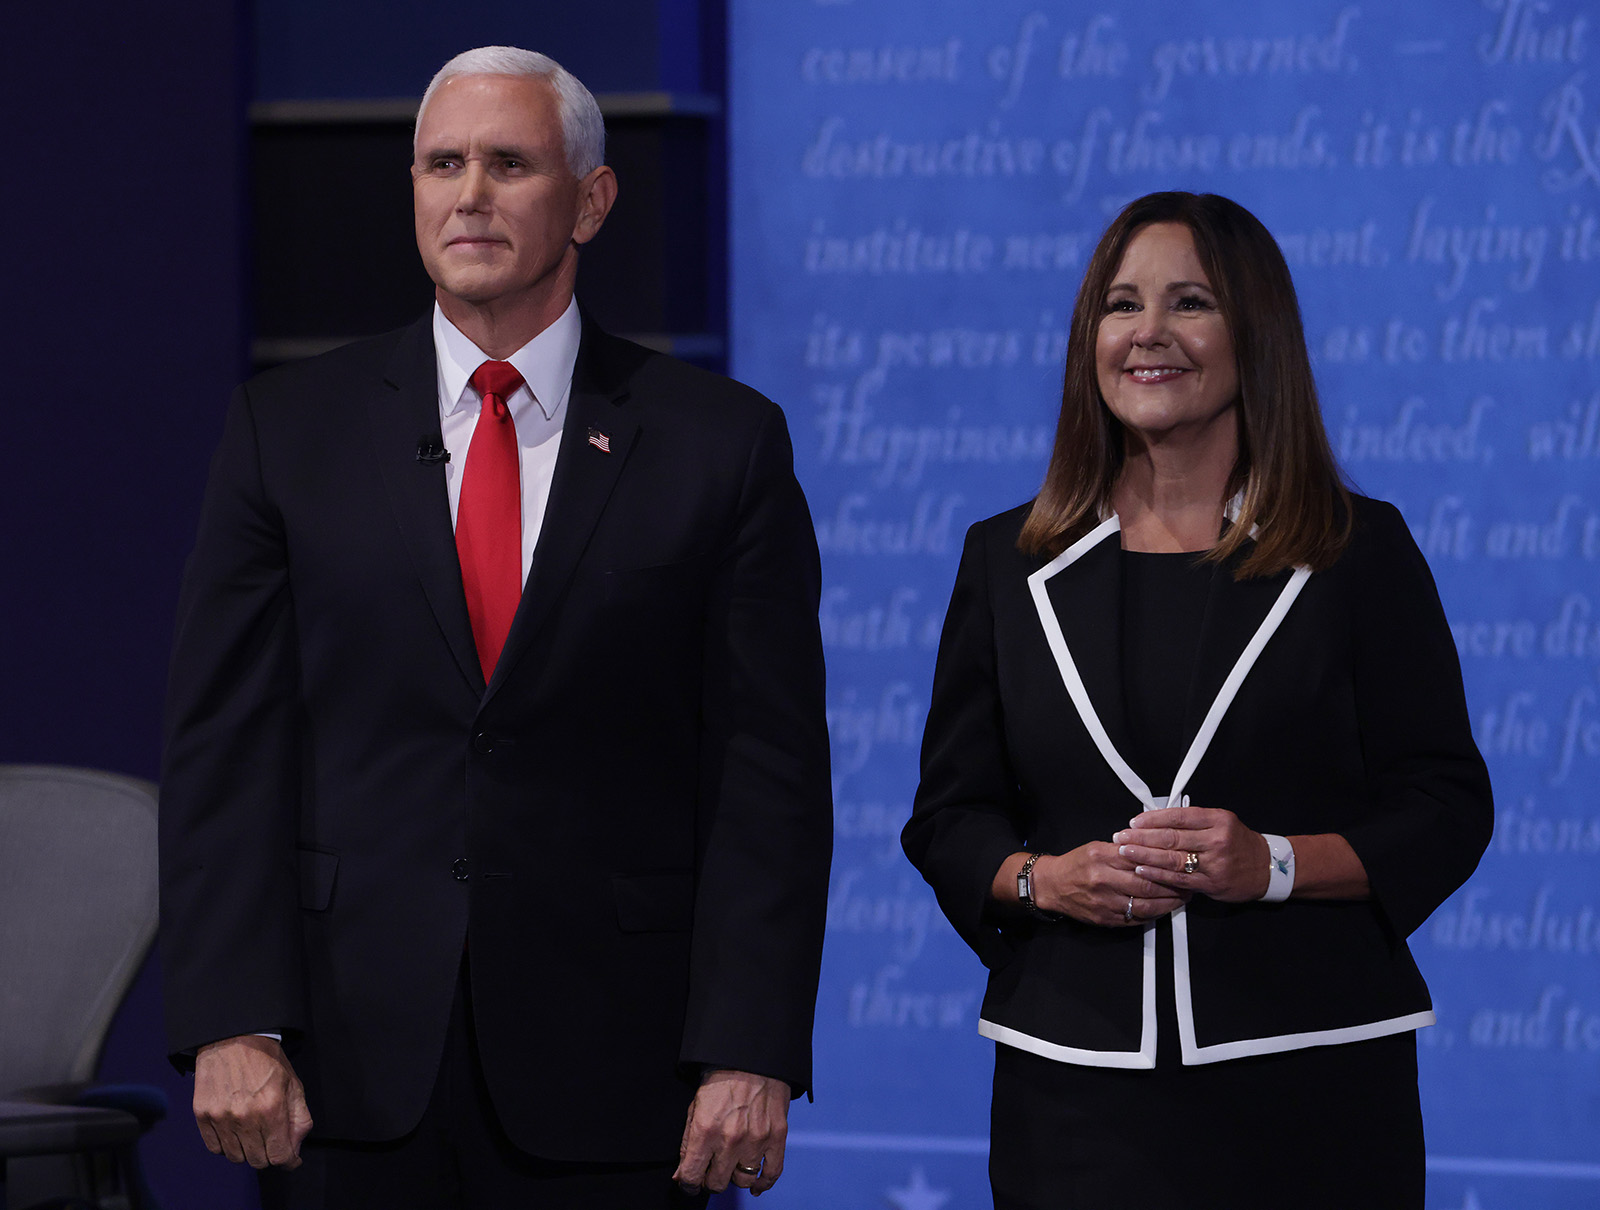 Vice President Mike Pence and wife Karen Pence appear on stage after the vice presidential debate against Democratic vice presidential nominee Sen. Kamala Harris a the University of Utah on Wednesday in Salt Lake City.